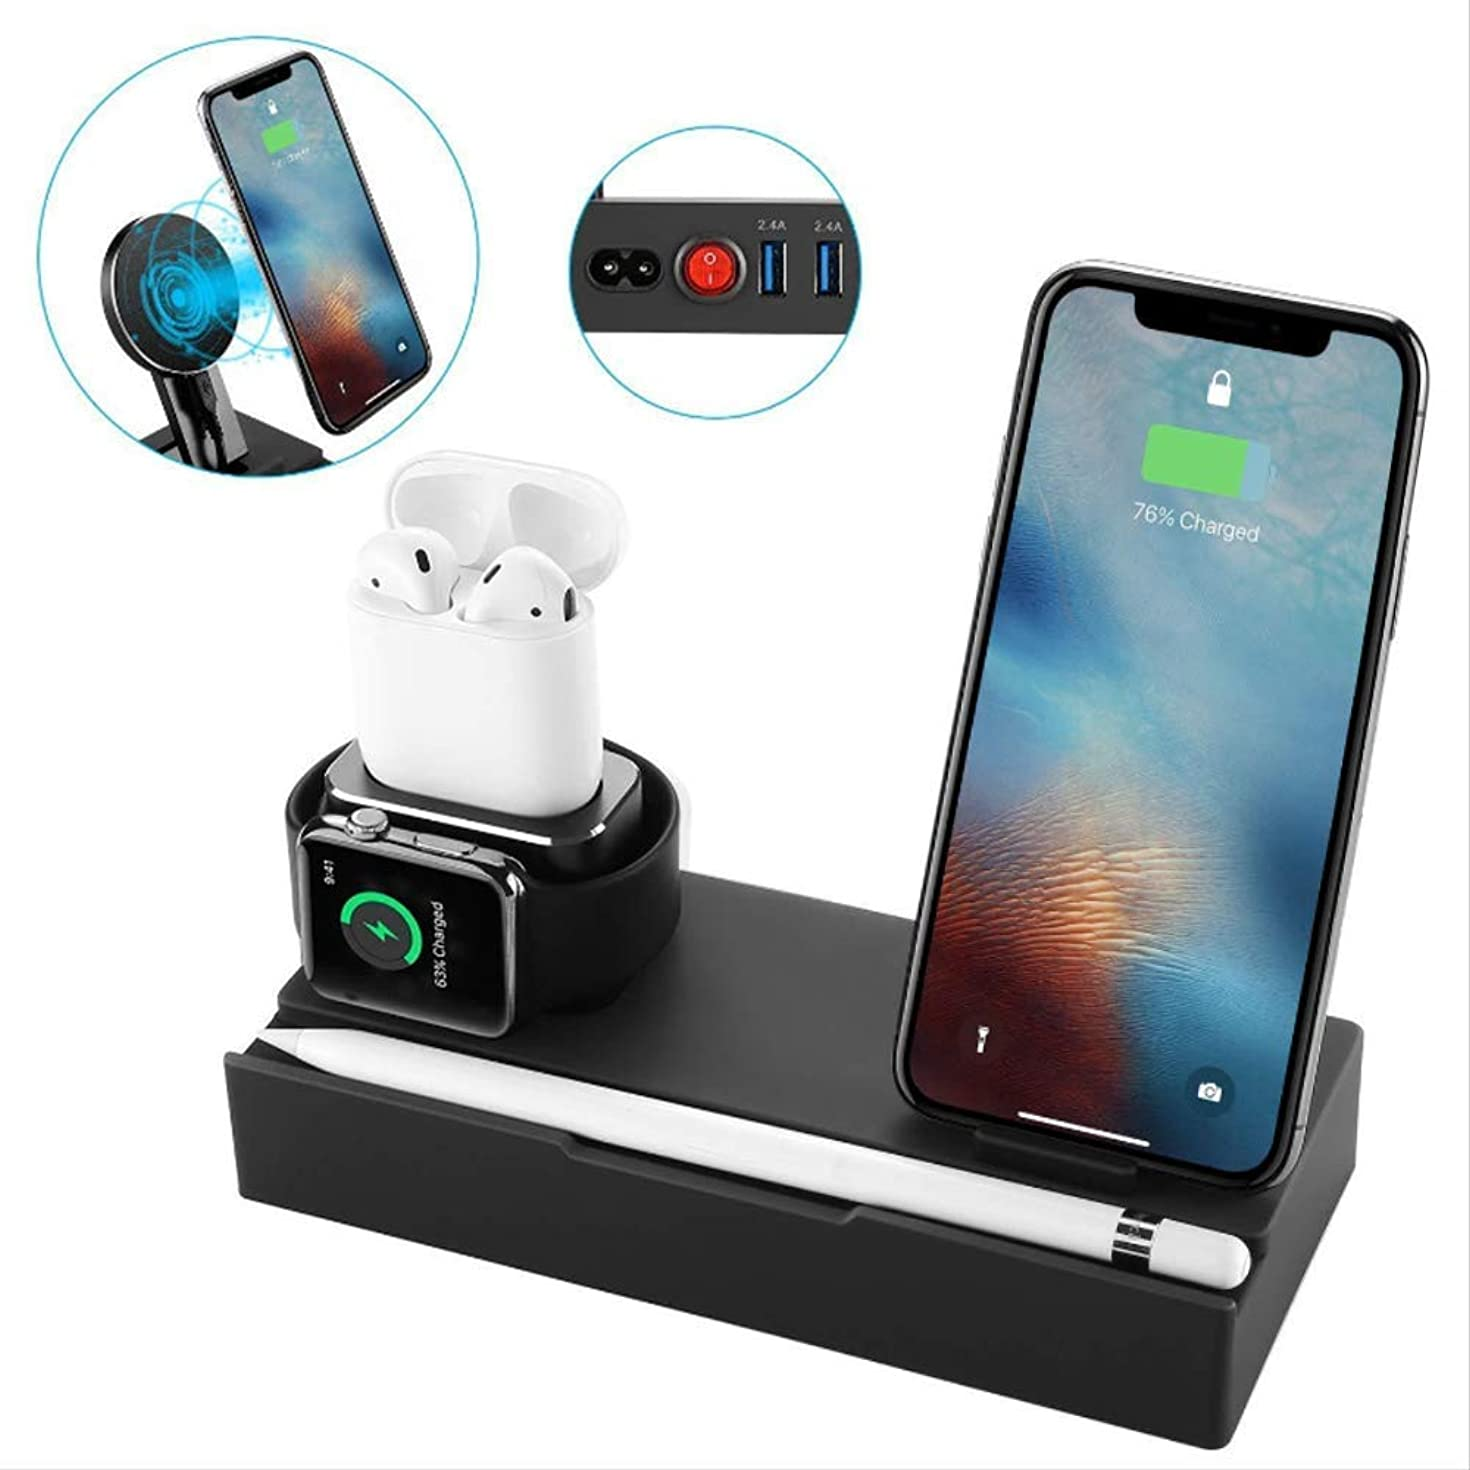 [8 in 1] Upgrade Aluminum Charging Dock Stand,iCozzier Tablet Cell Phone Wireless Stand with 2 Ports USB Charger, Organizer Station for Apple Watch,Pencil, iPhone, AirPods,iPad